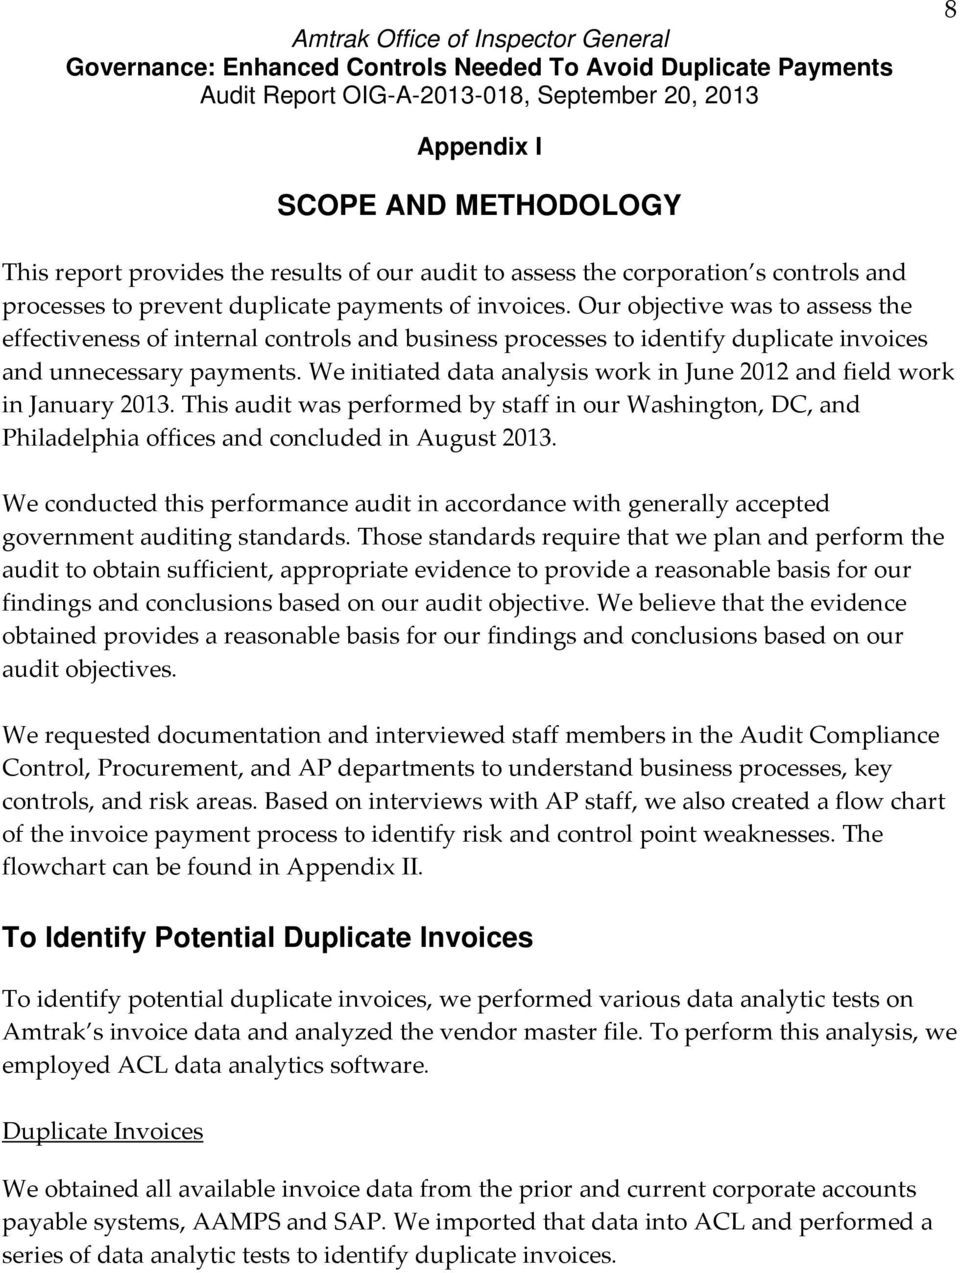 We initiated data analysis work in June 2012 and field work in January 2013. This audit was performed by staff in our Washington, DC, and Philadelphia offices and concluded in August 2013.